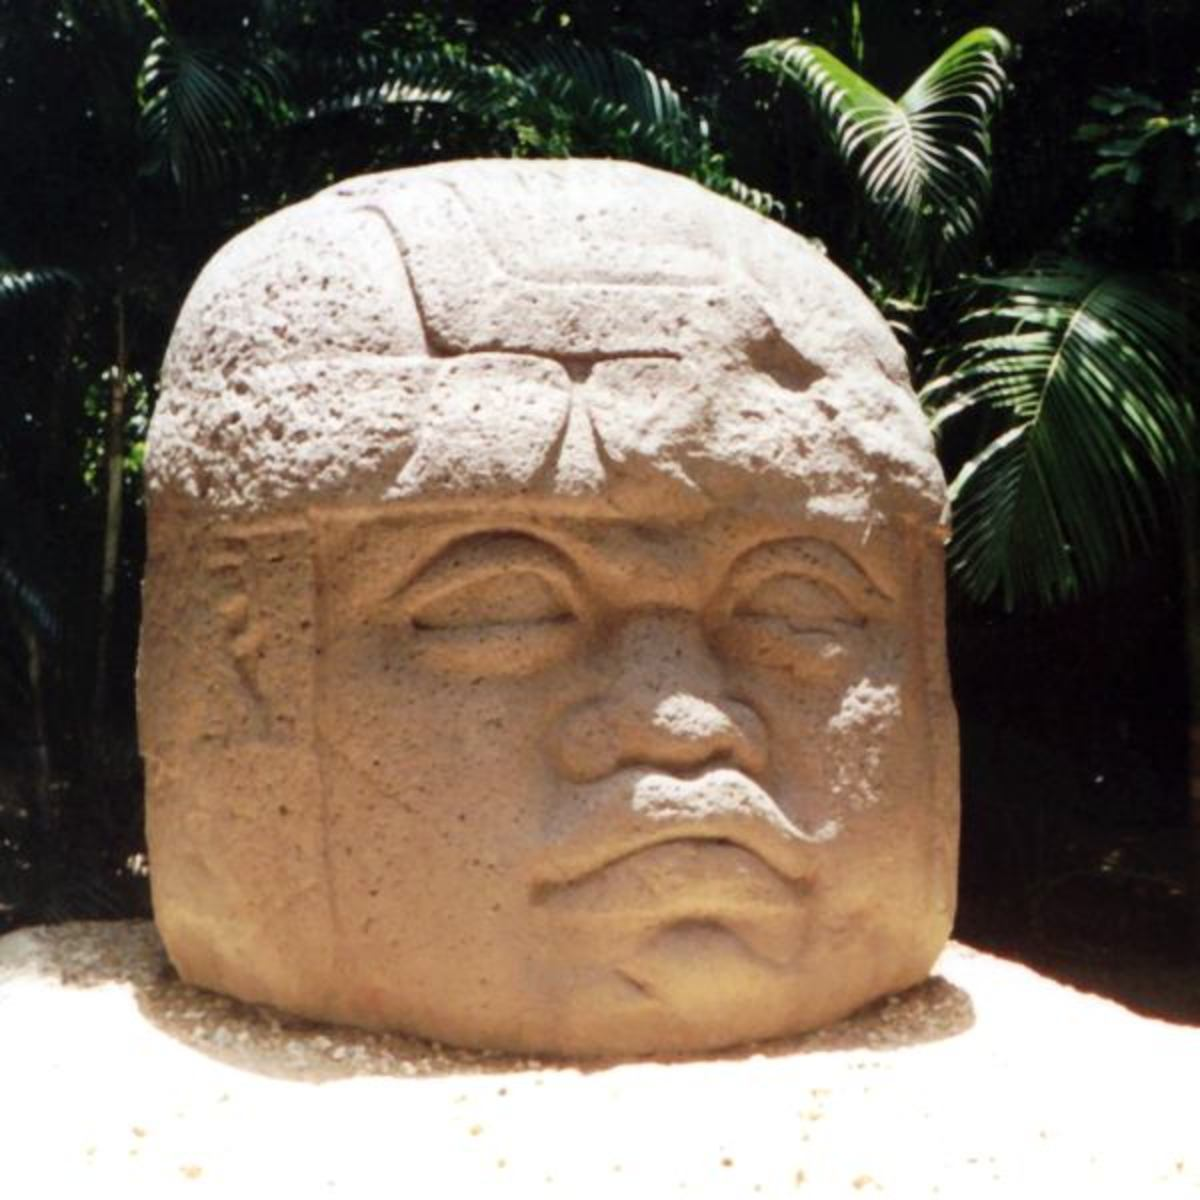 Monument 1, one of the four Olmec colossal heads at La Venta. This one measures nearly 3 meters (9 ft.) tall.